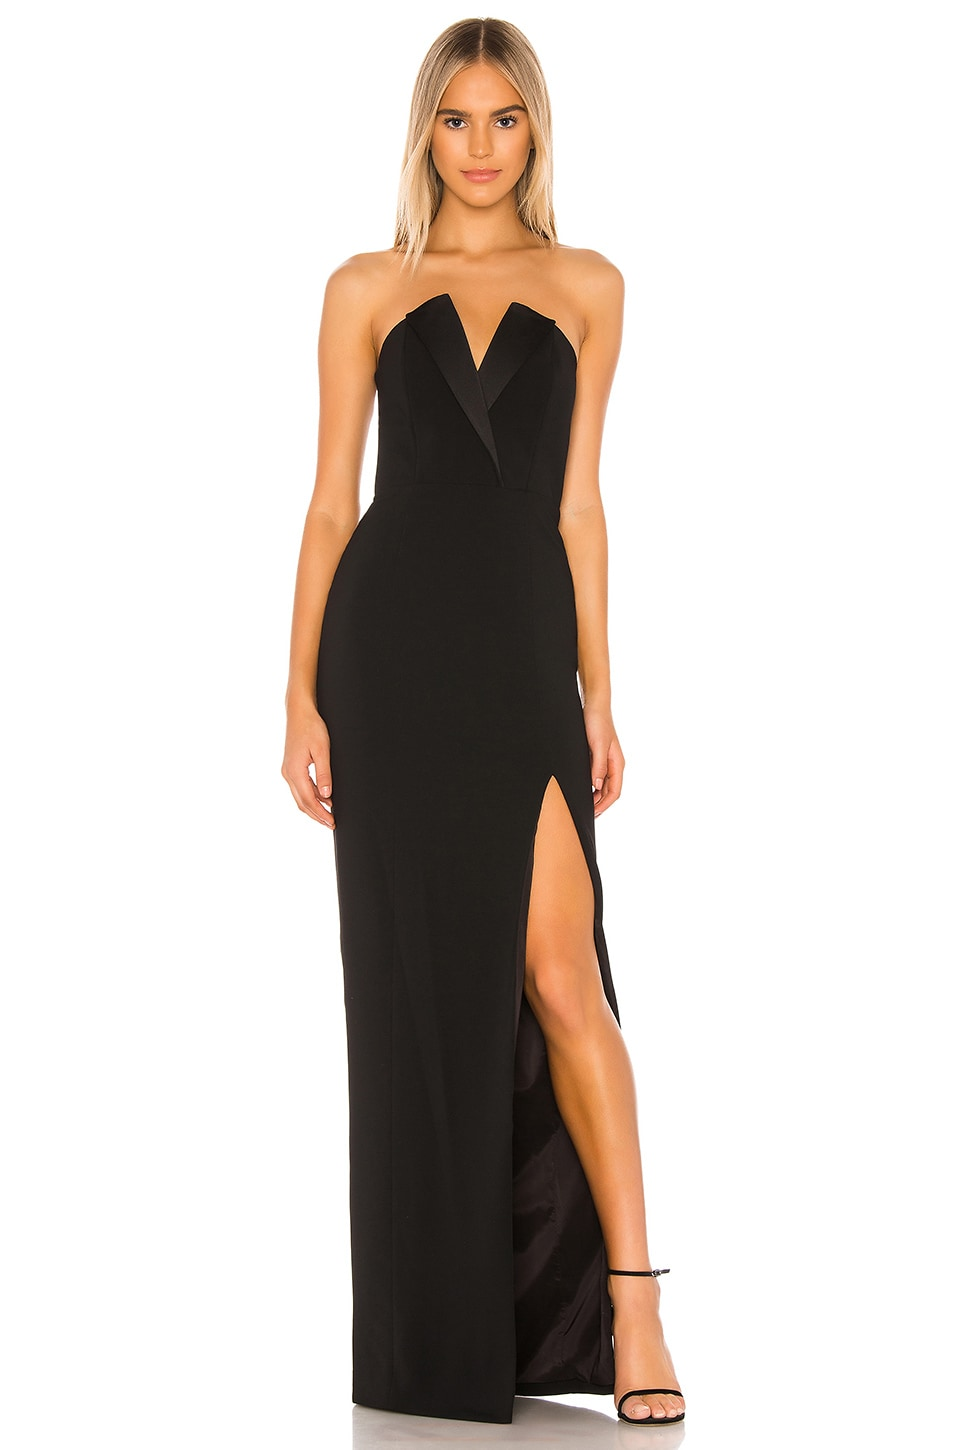 Jay Godfrey Sylvia Strapless Tux Gown in Black